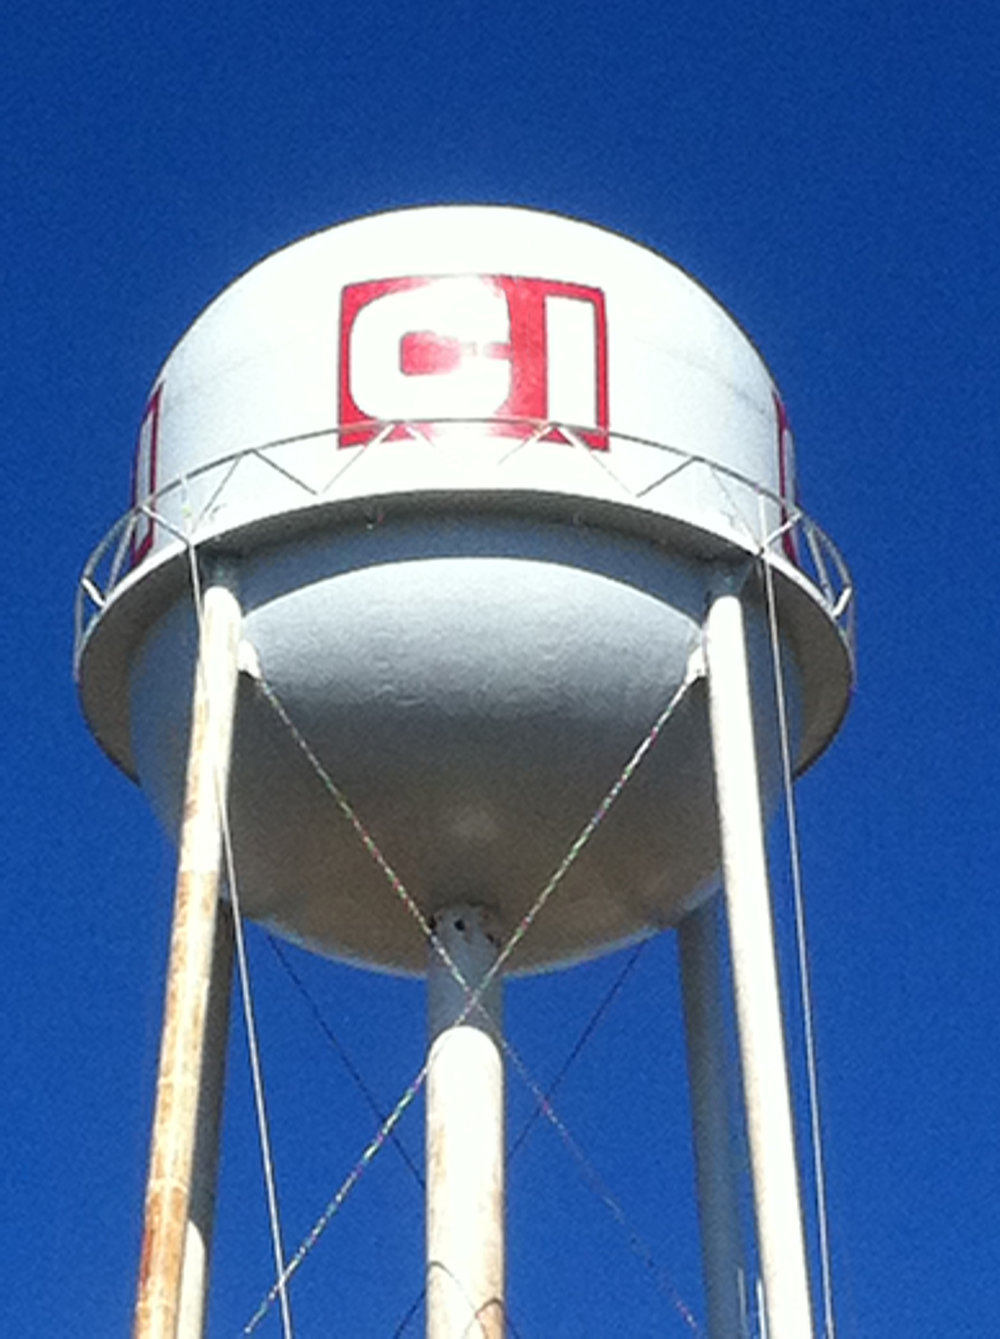 CI Water Tower